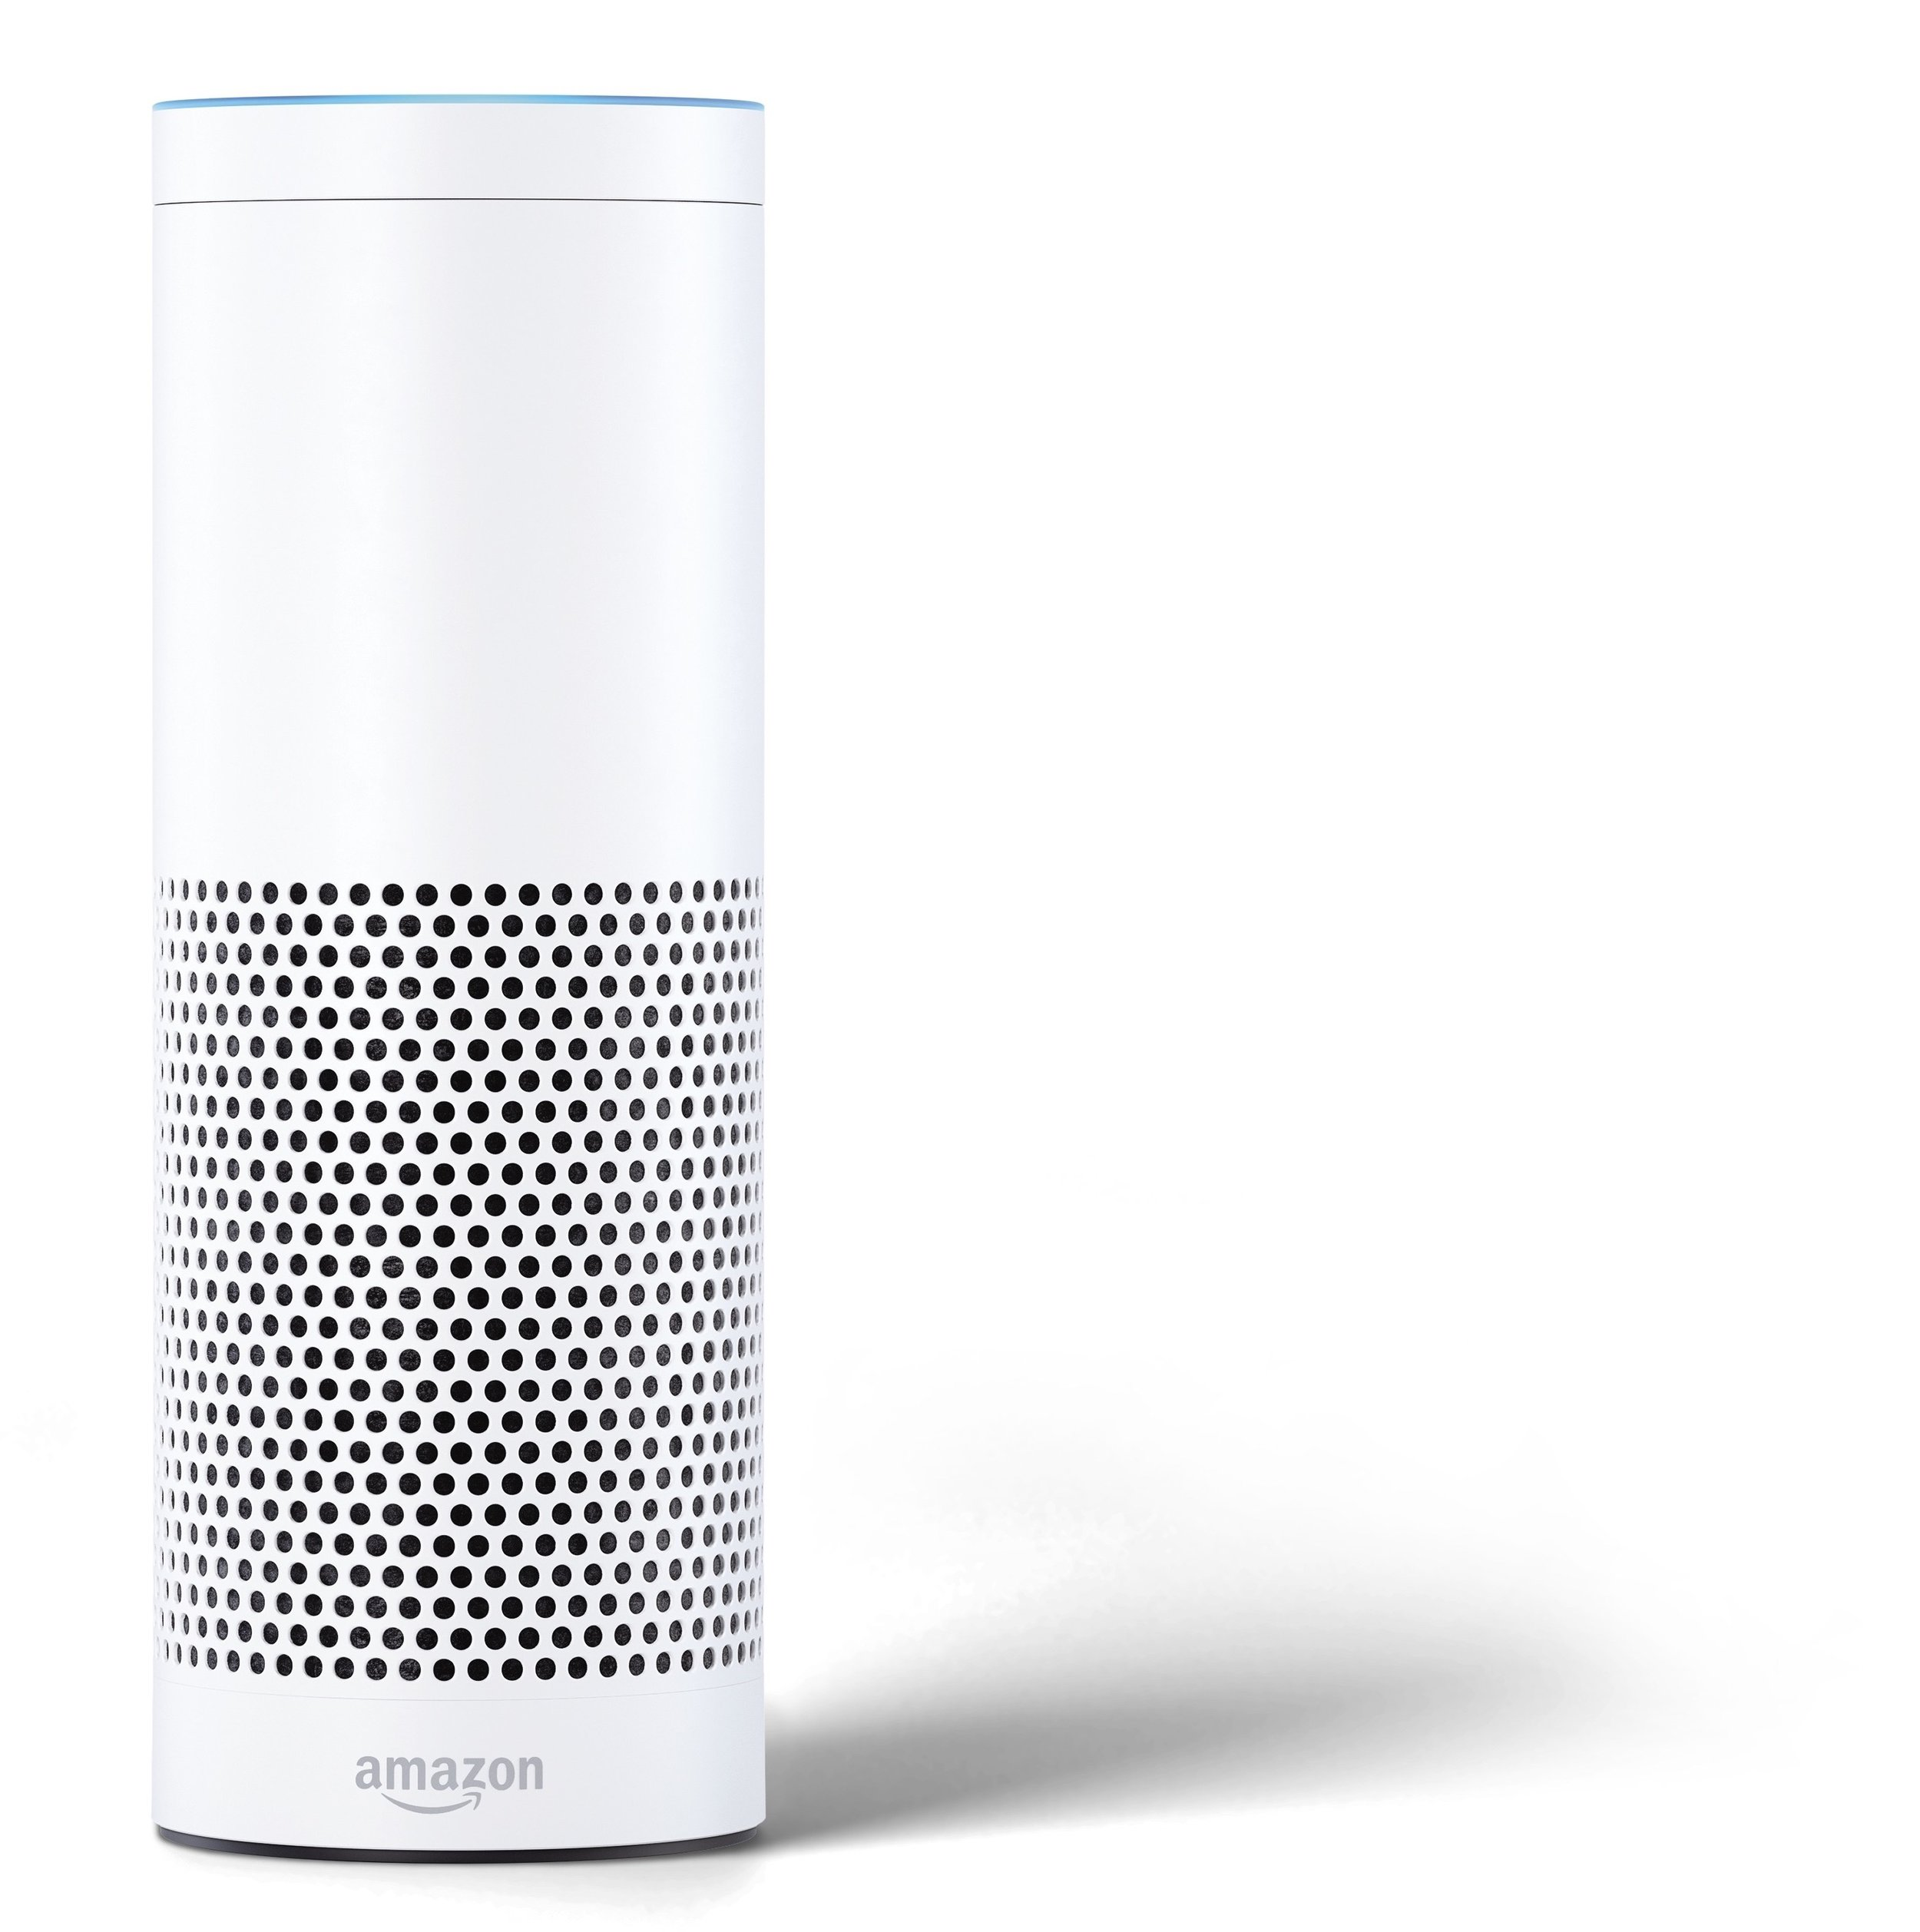 Voice-First Experiences - √Nearly 1 in 5 U.S. households have access to a smart speaker√Over one billion voice searches per month√50% of all searches will be voice searches by 2020√Voice Shopping to Reach $40 Billion in U.S.